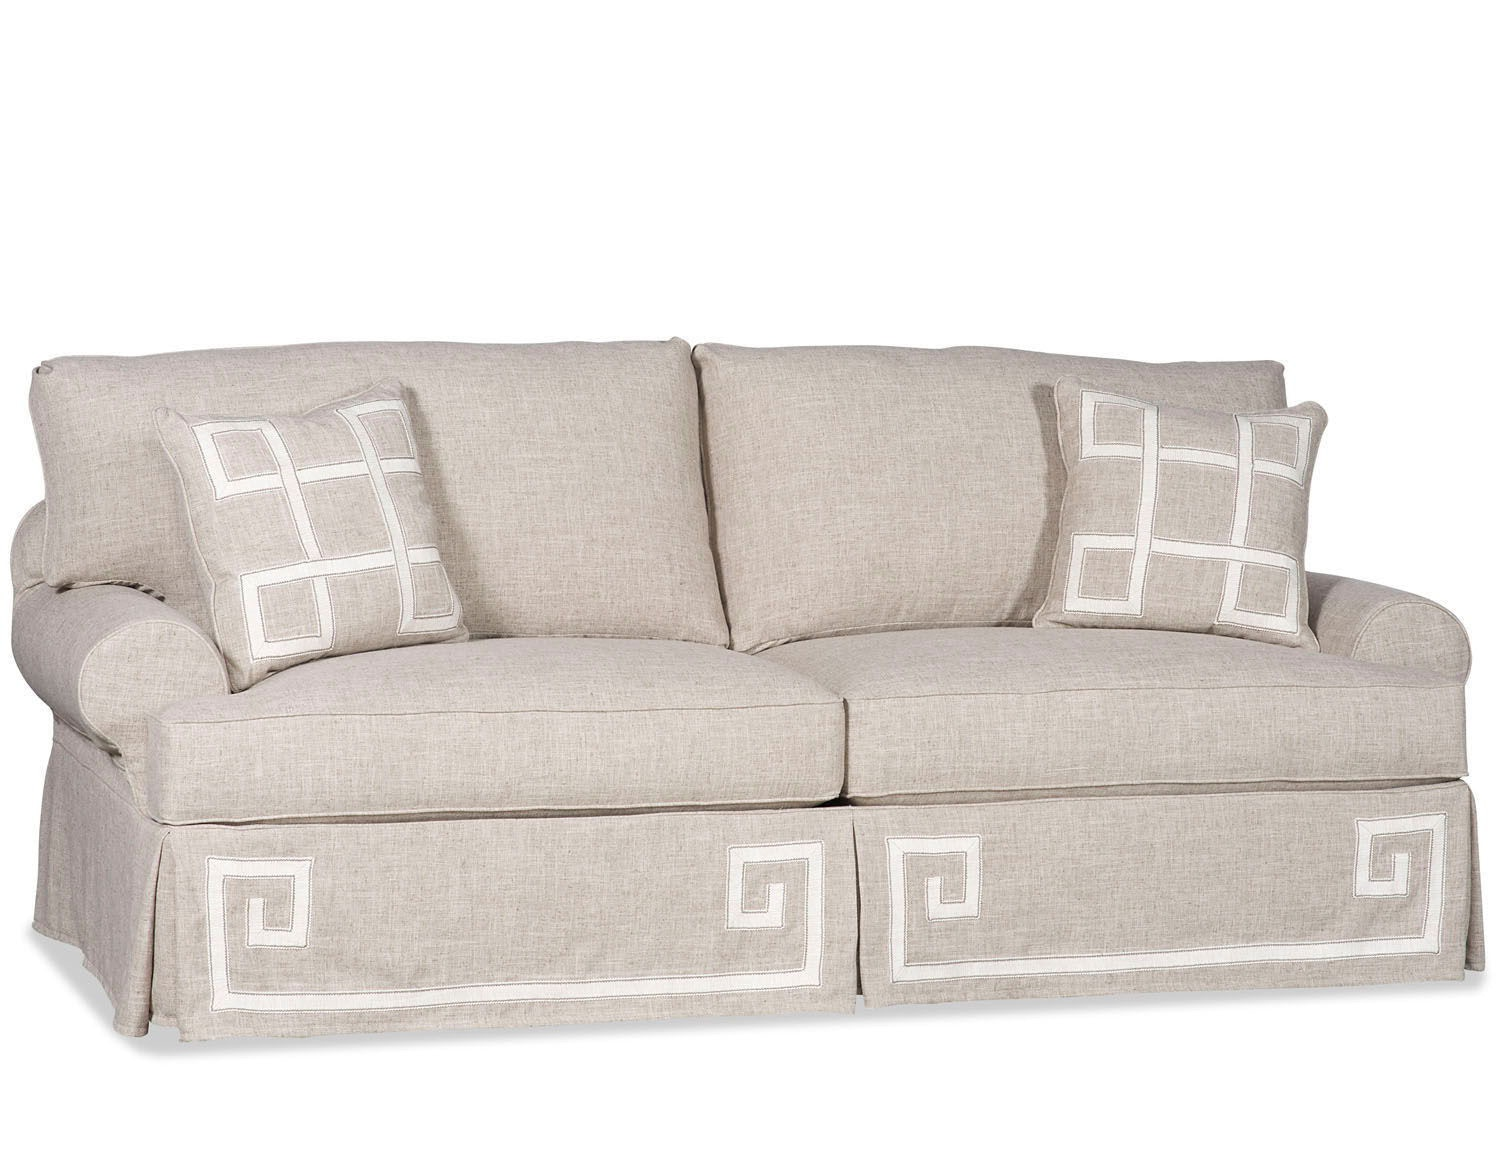 Good Paul Robert Dean Sofa Slipcover 420 SLIP